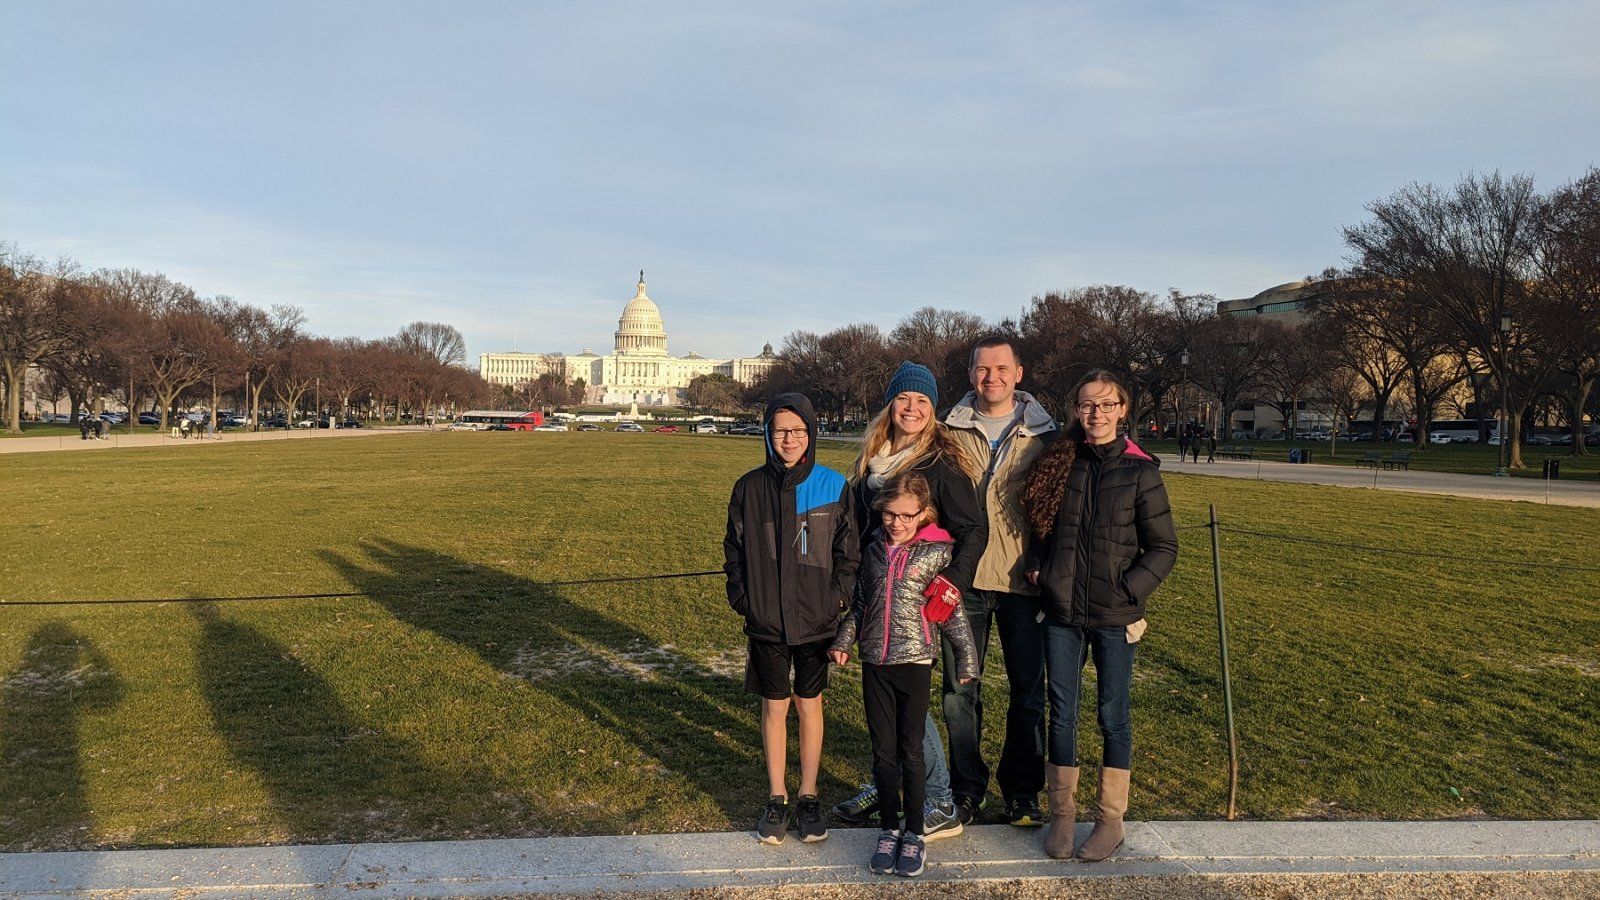 family in front of building